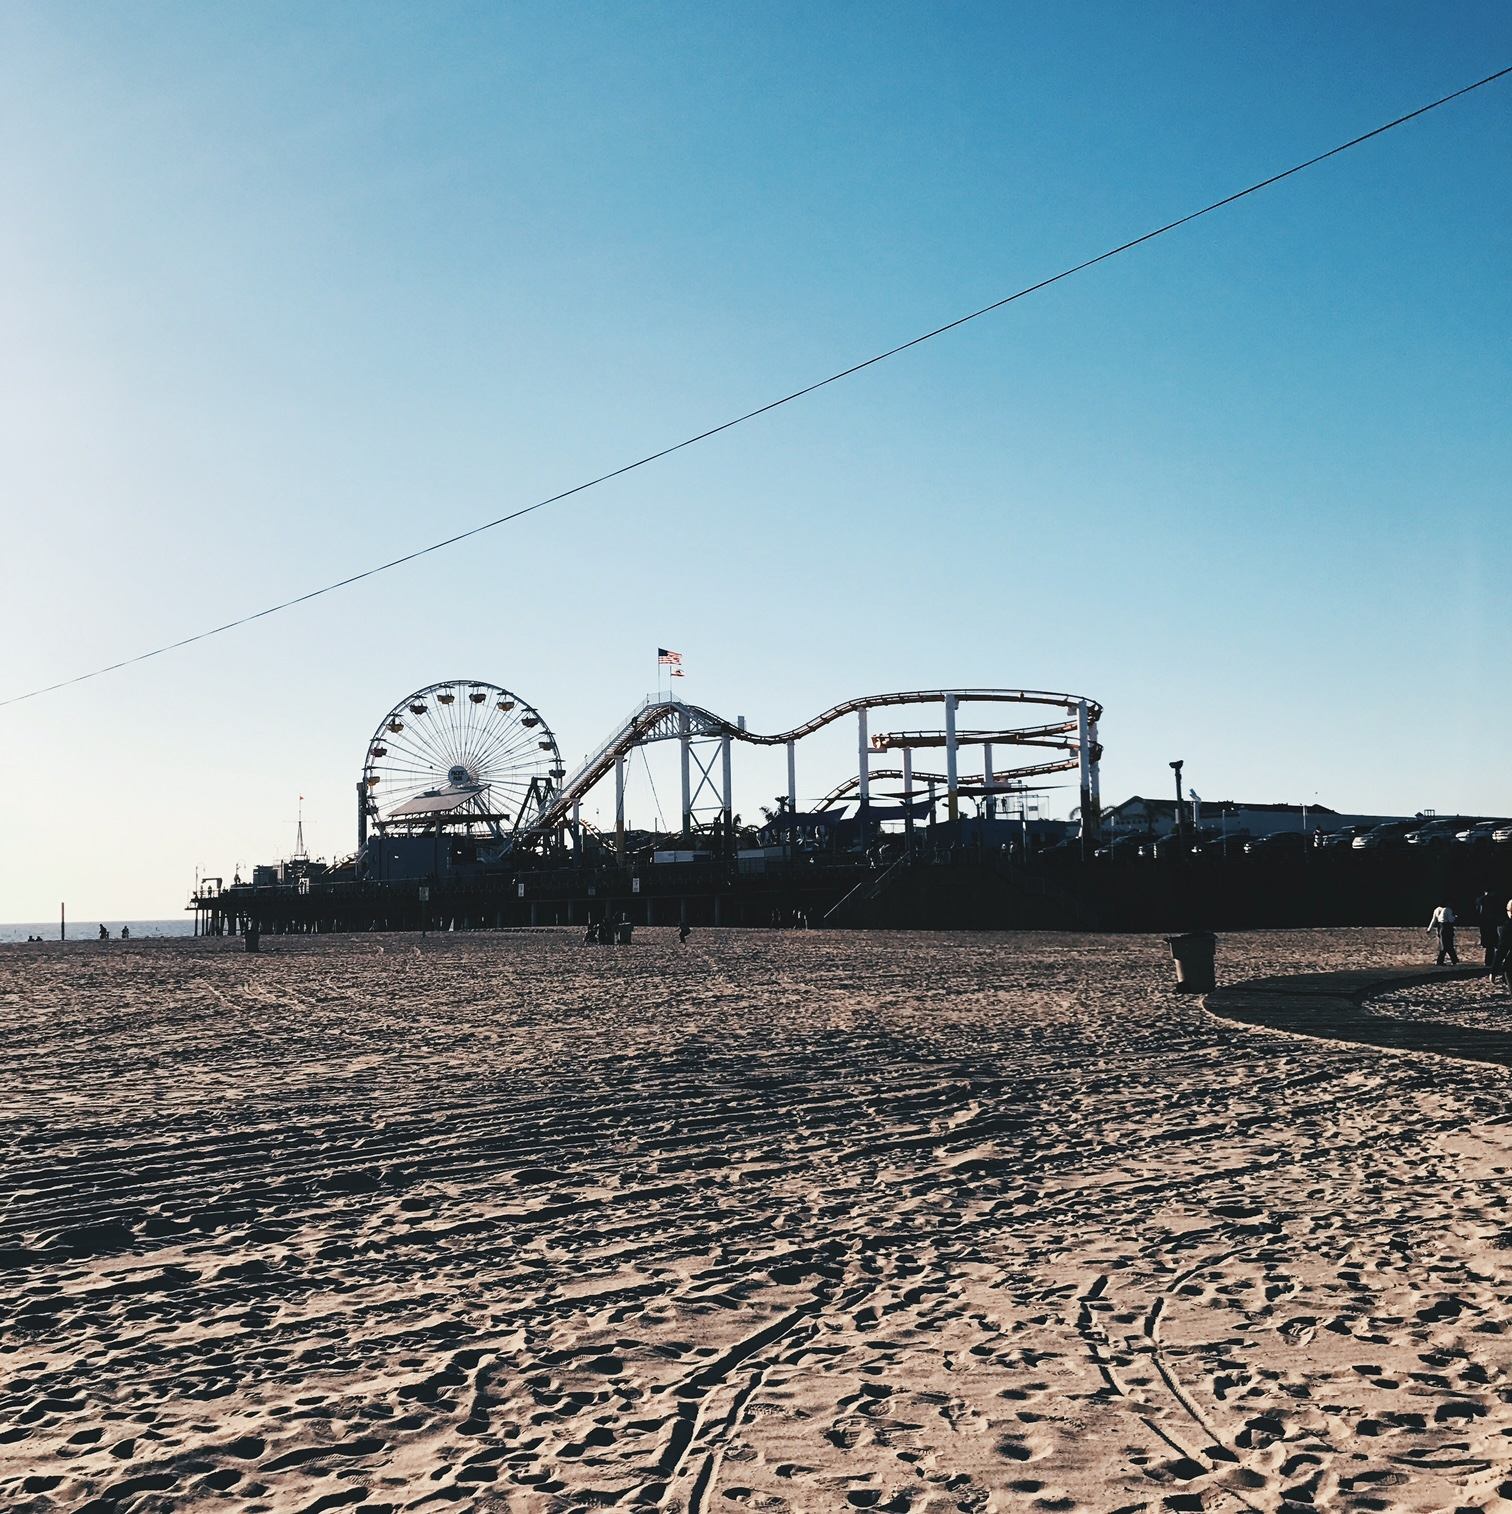 Santa Monica, always quite lovely.